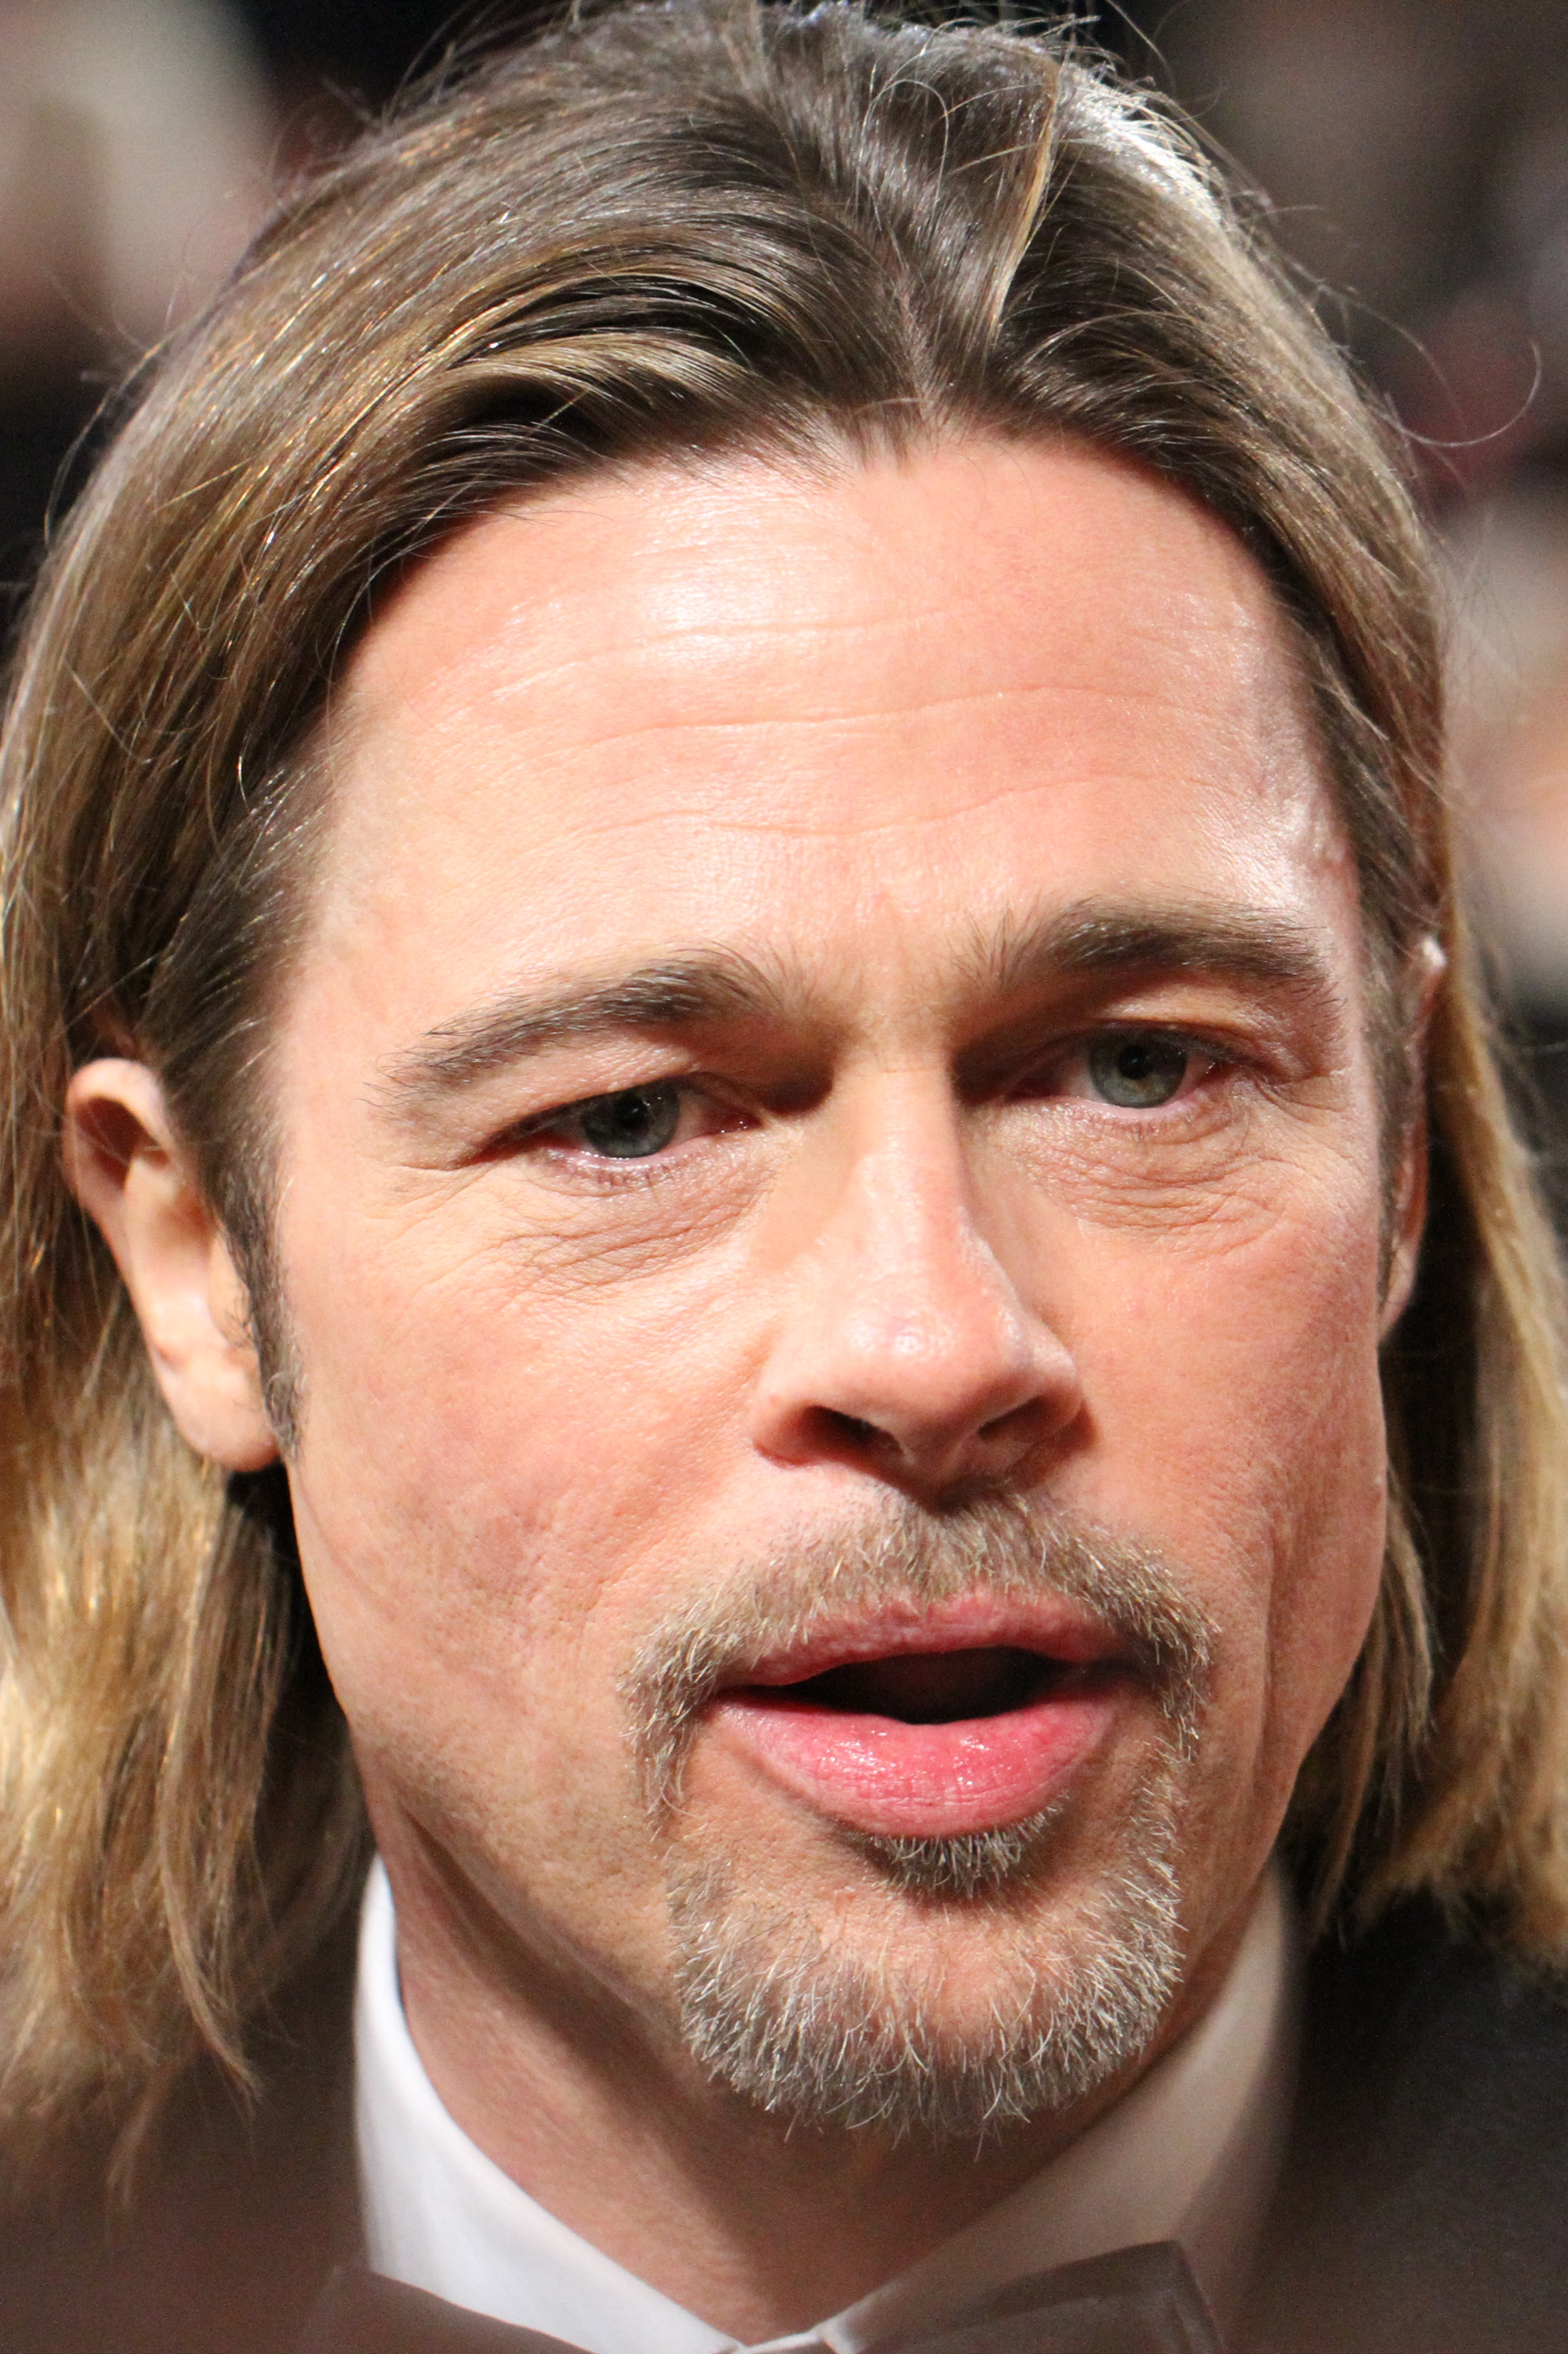 Description Brad Pitt 2012.jpg